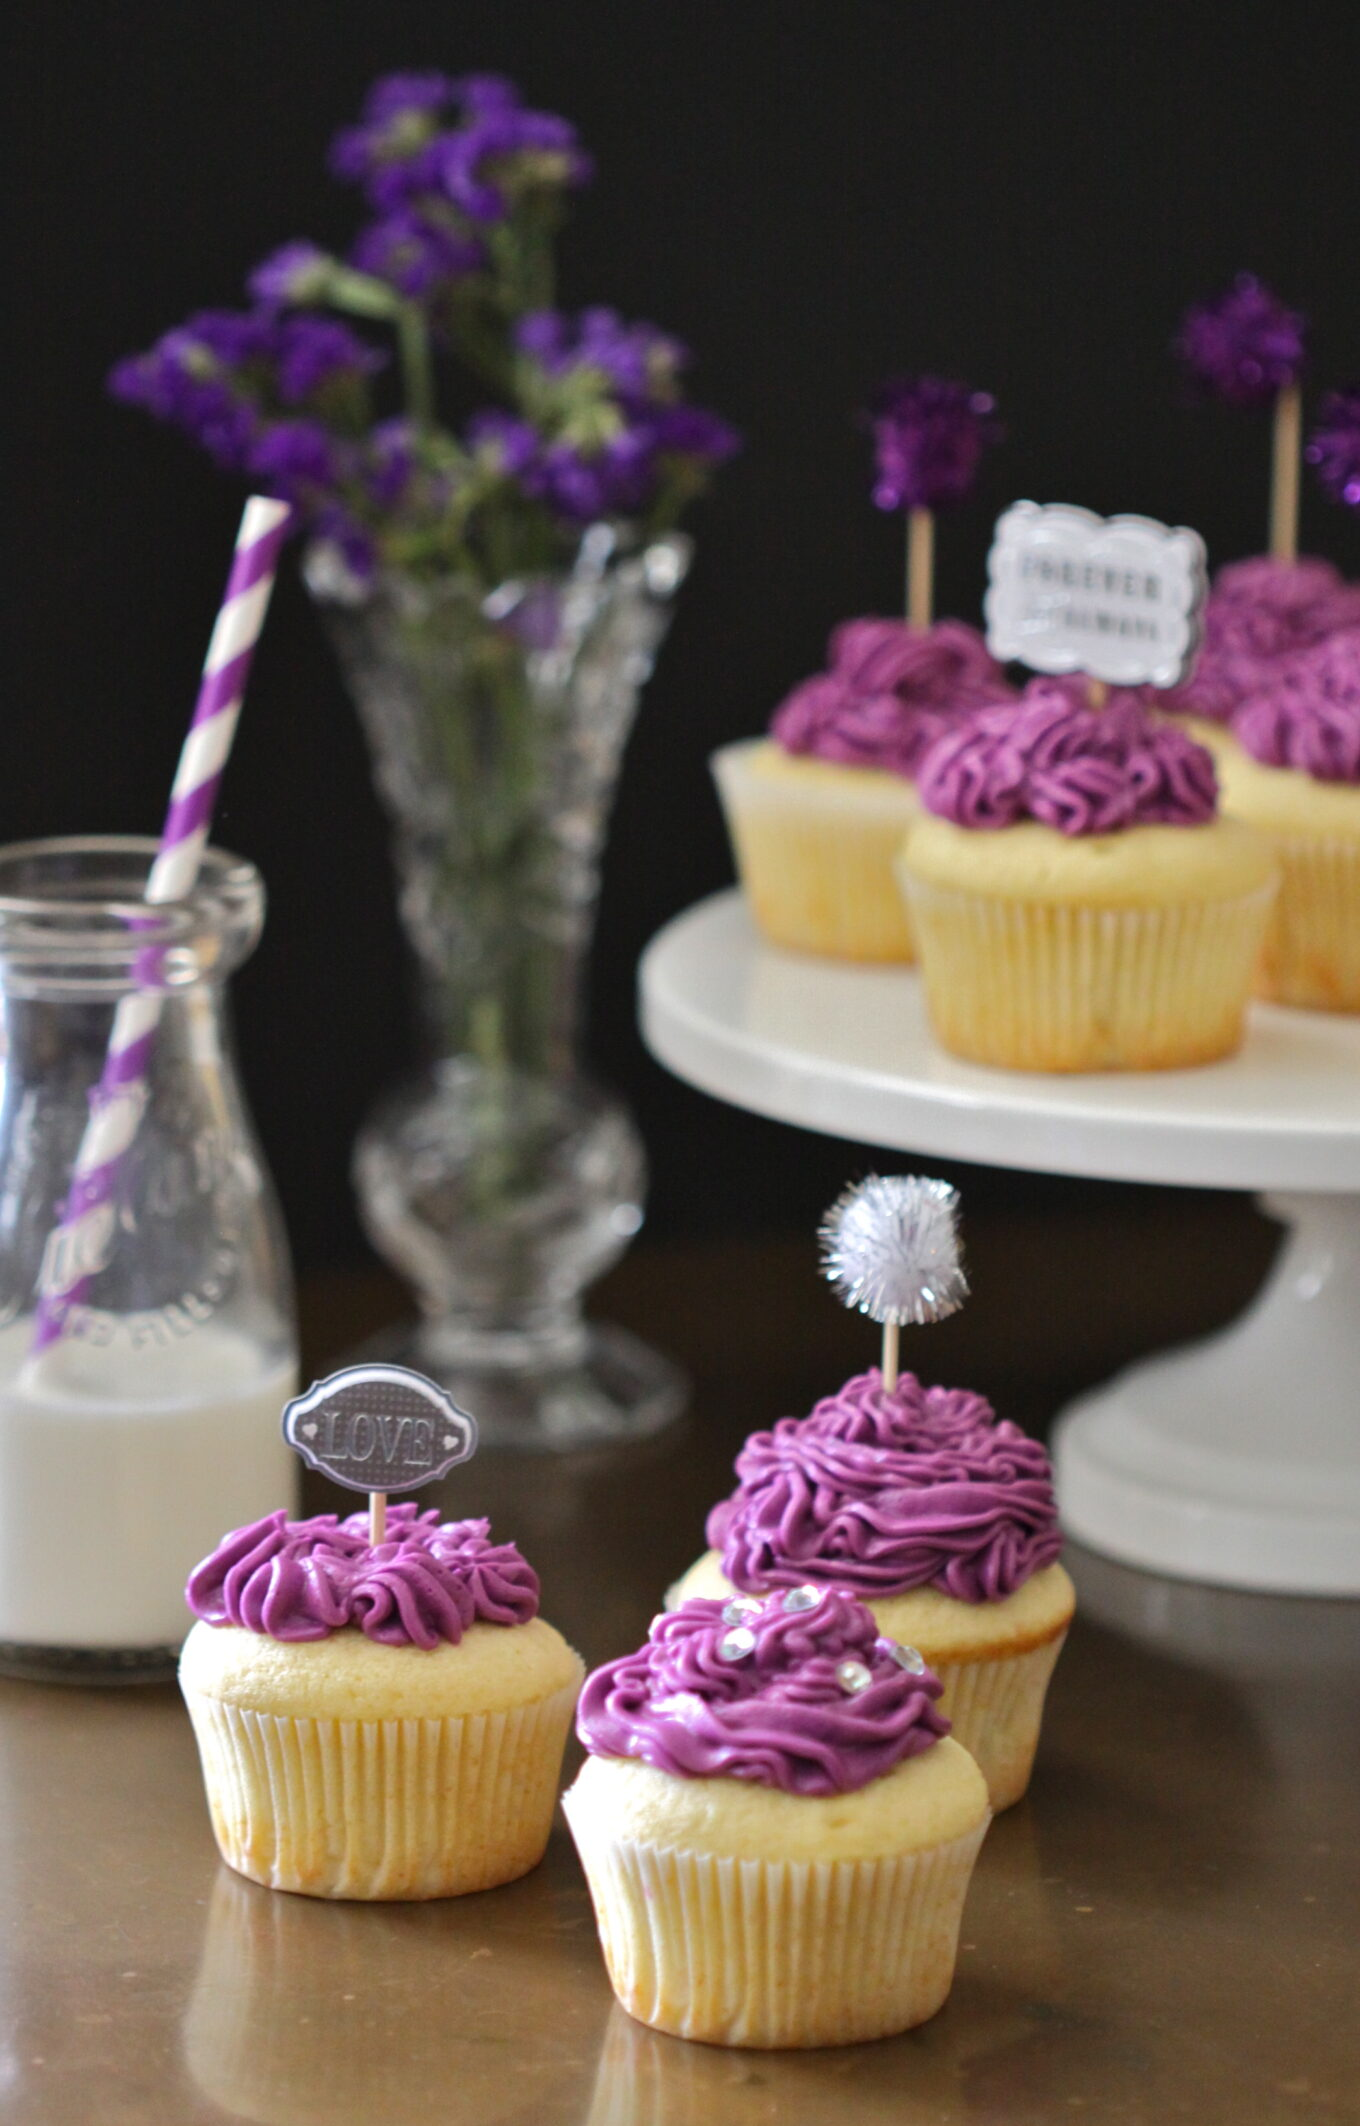 Cuisine Mauve Vanilla Cupcakes With Purple Buttercream Frosting